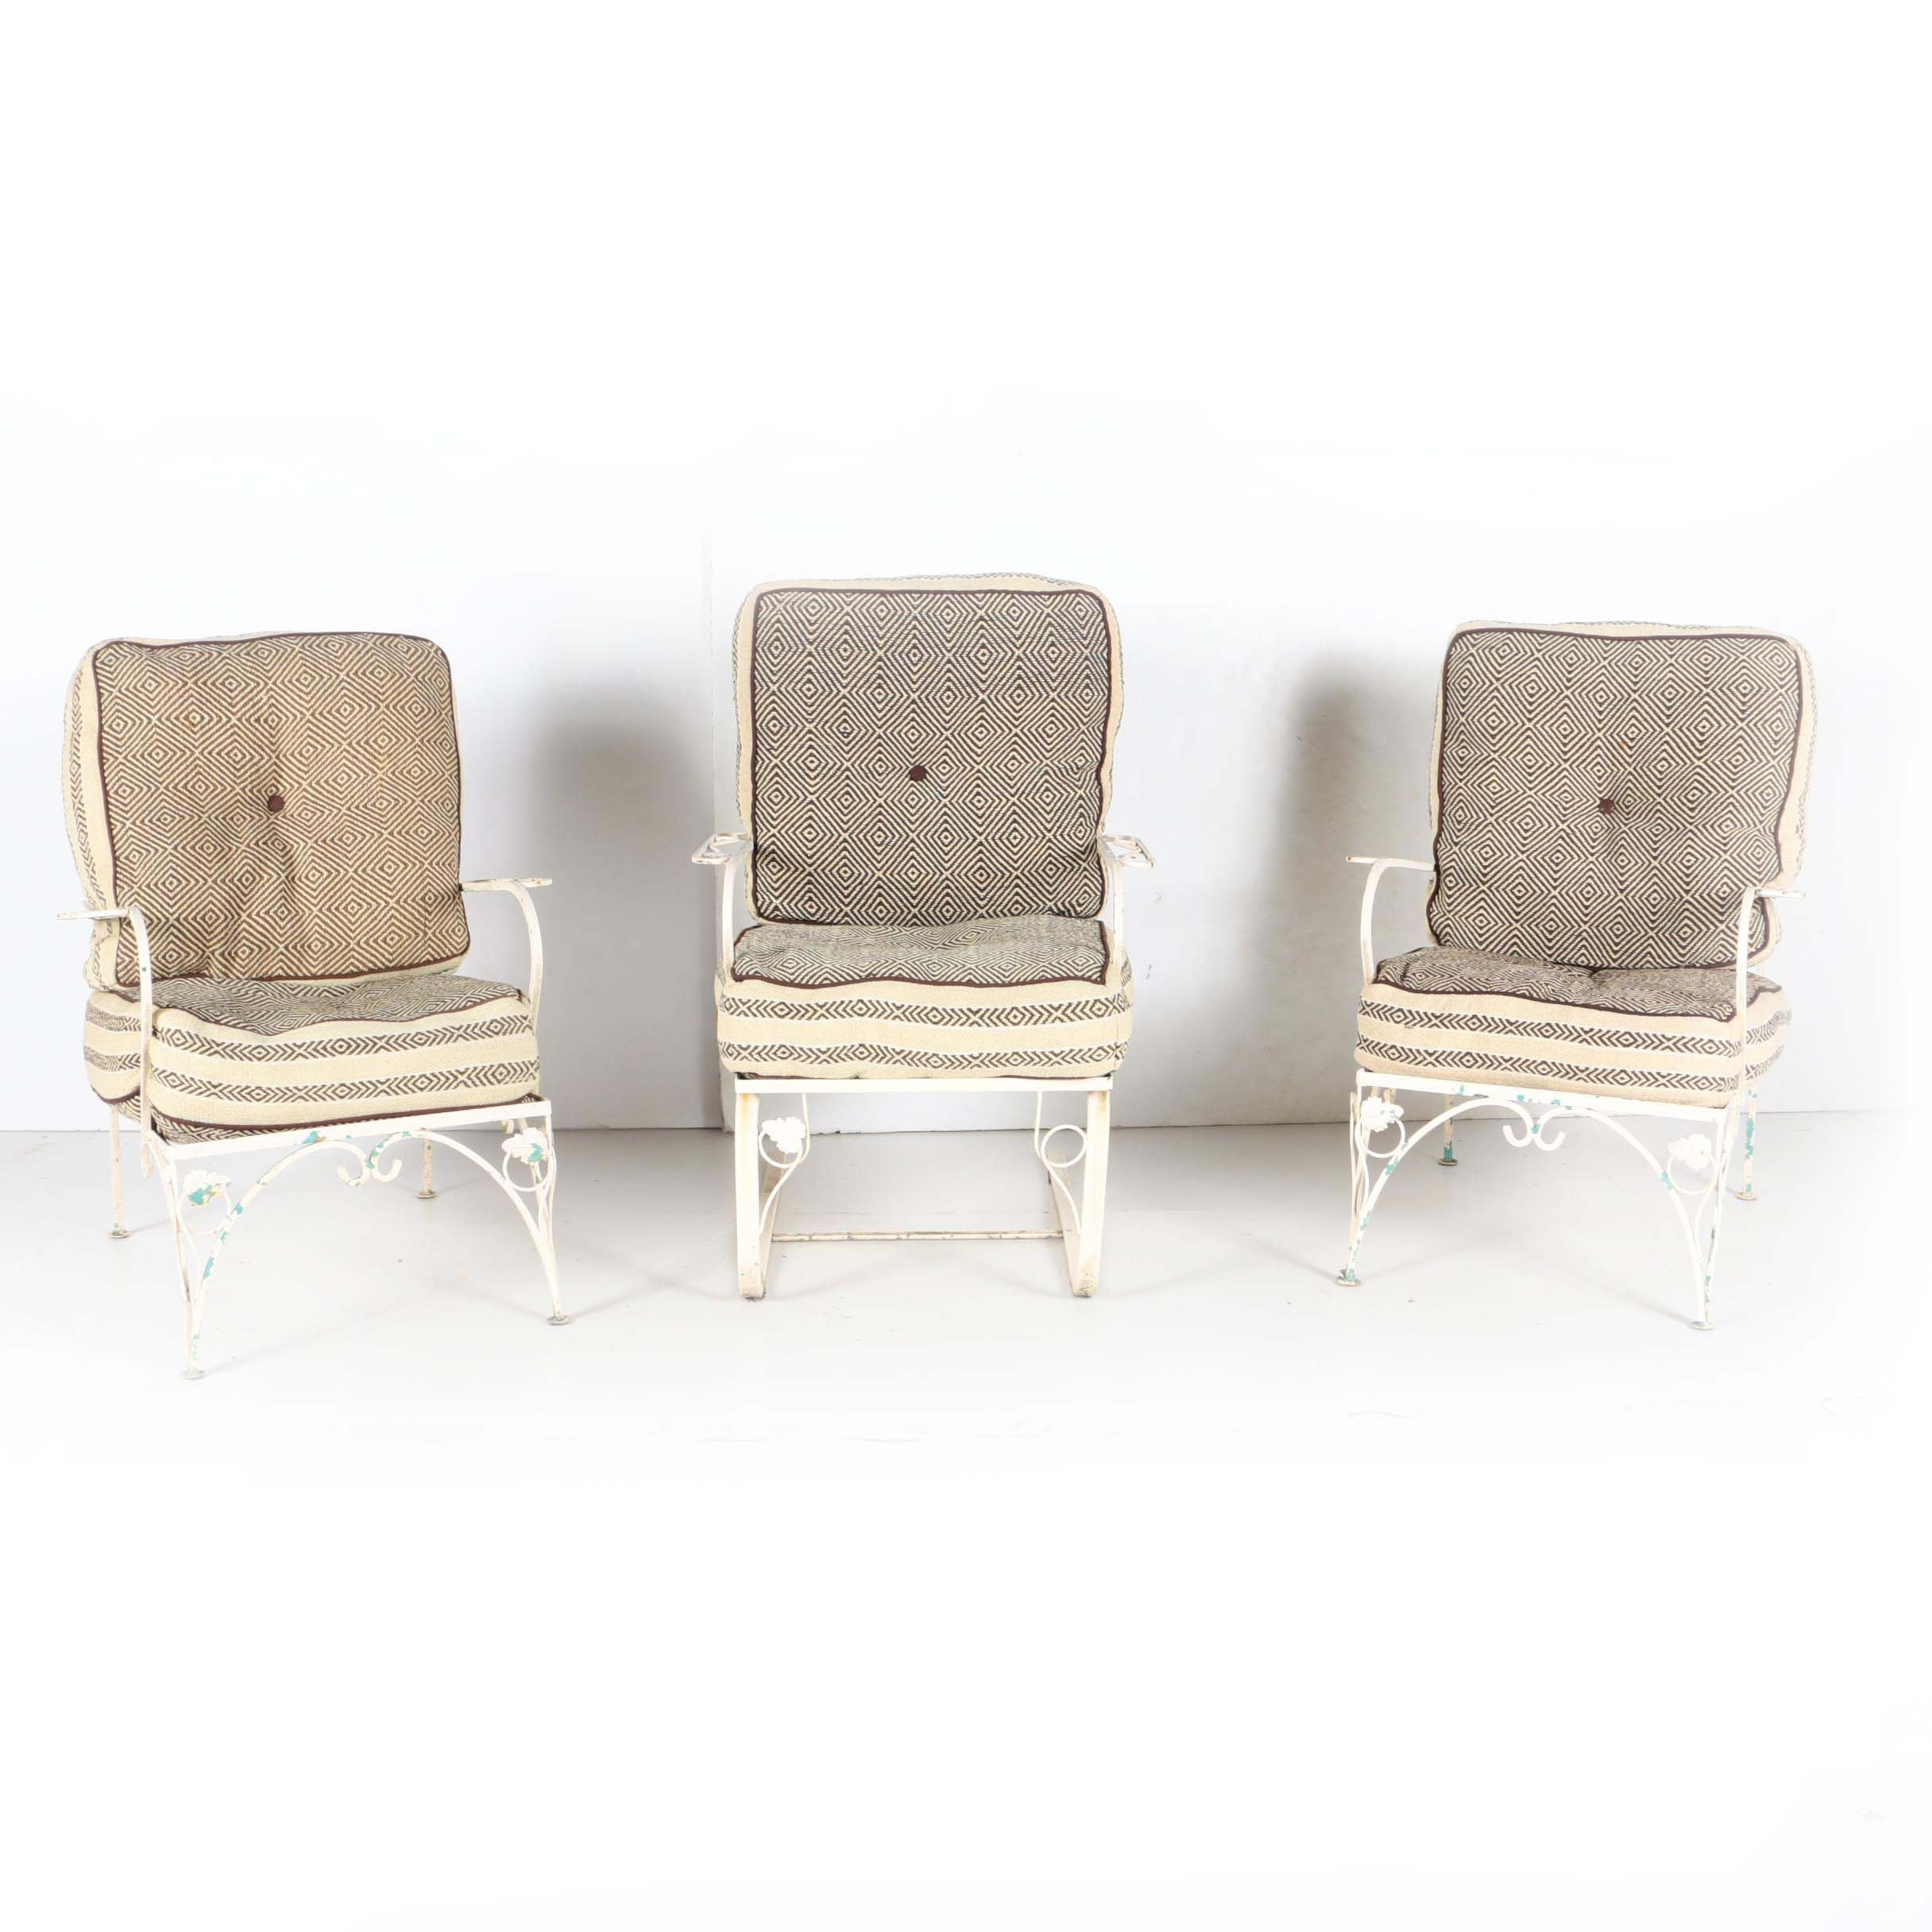 White Metal Patio Armchairs and Spring Rocker with Bird's Eye Patterned Cushions